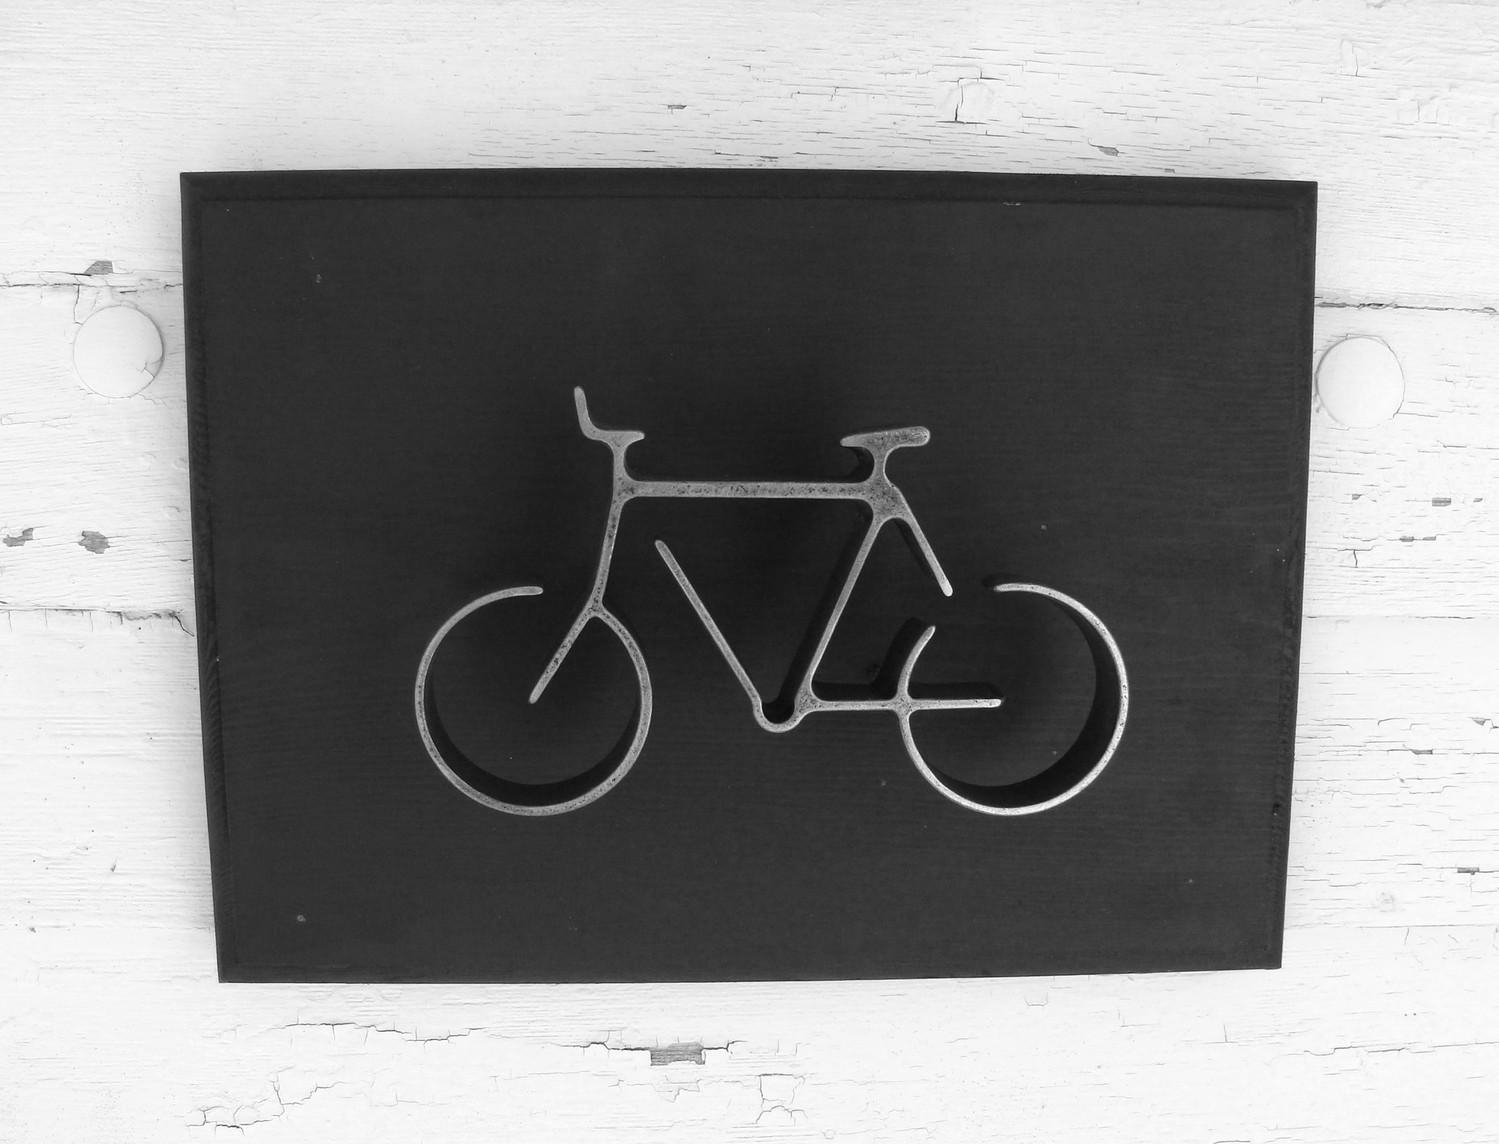 Metal Bike Wall Art Sign Bicycle Wall Hanging Home Or Office Regarding Bicycle Wall Art Decor (Image 13 of 20)